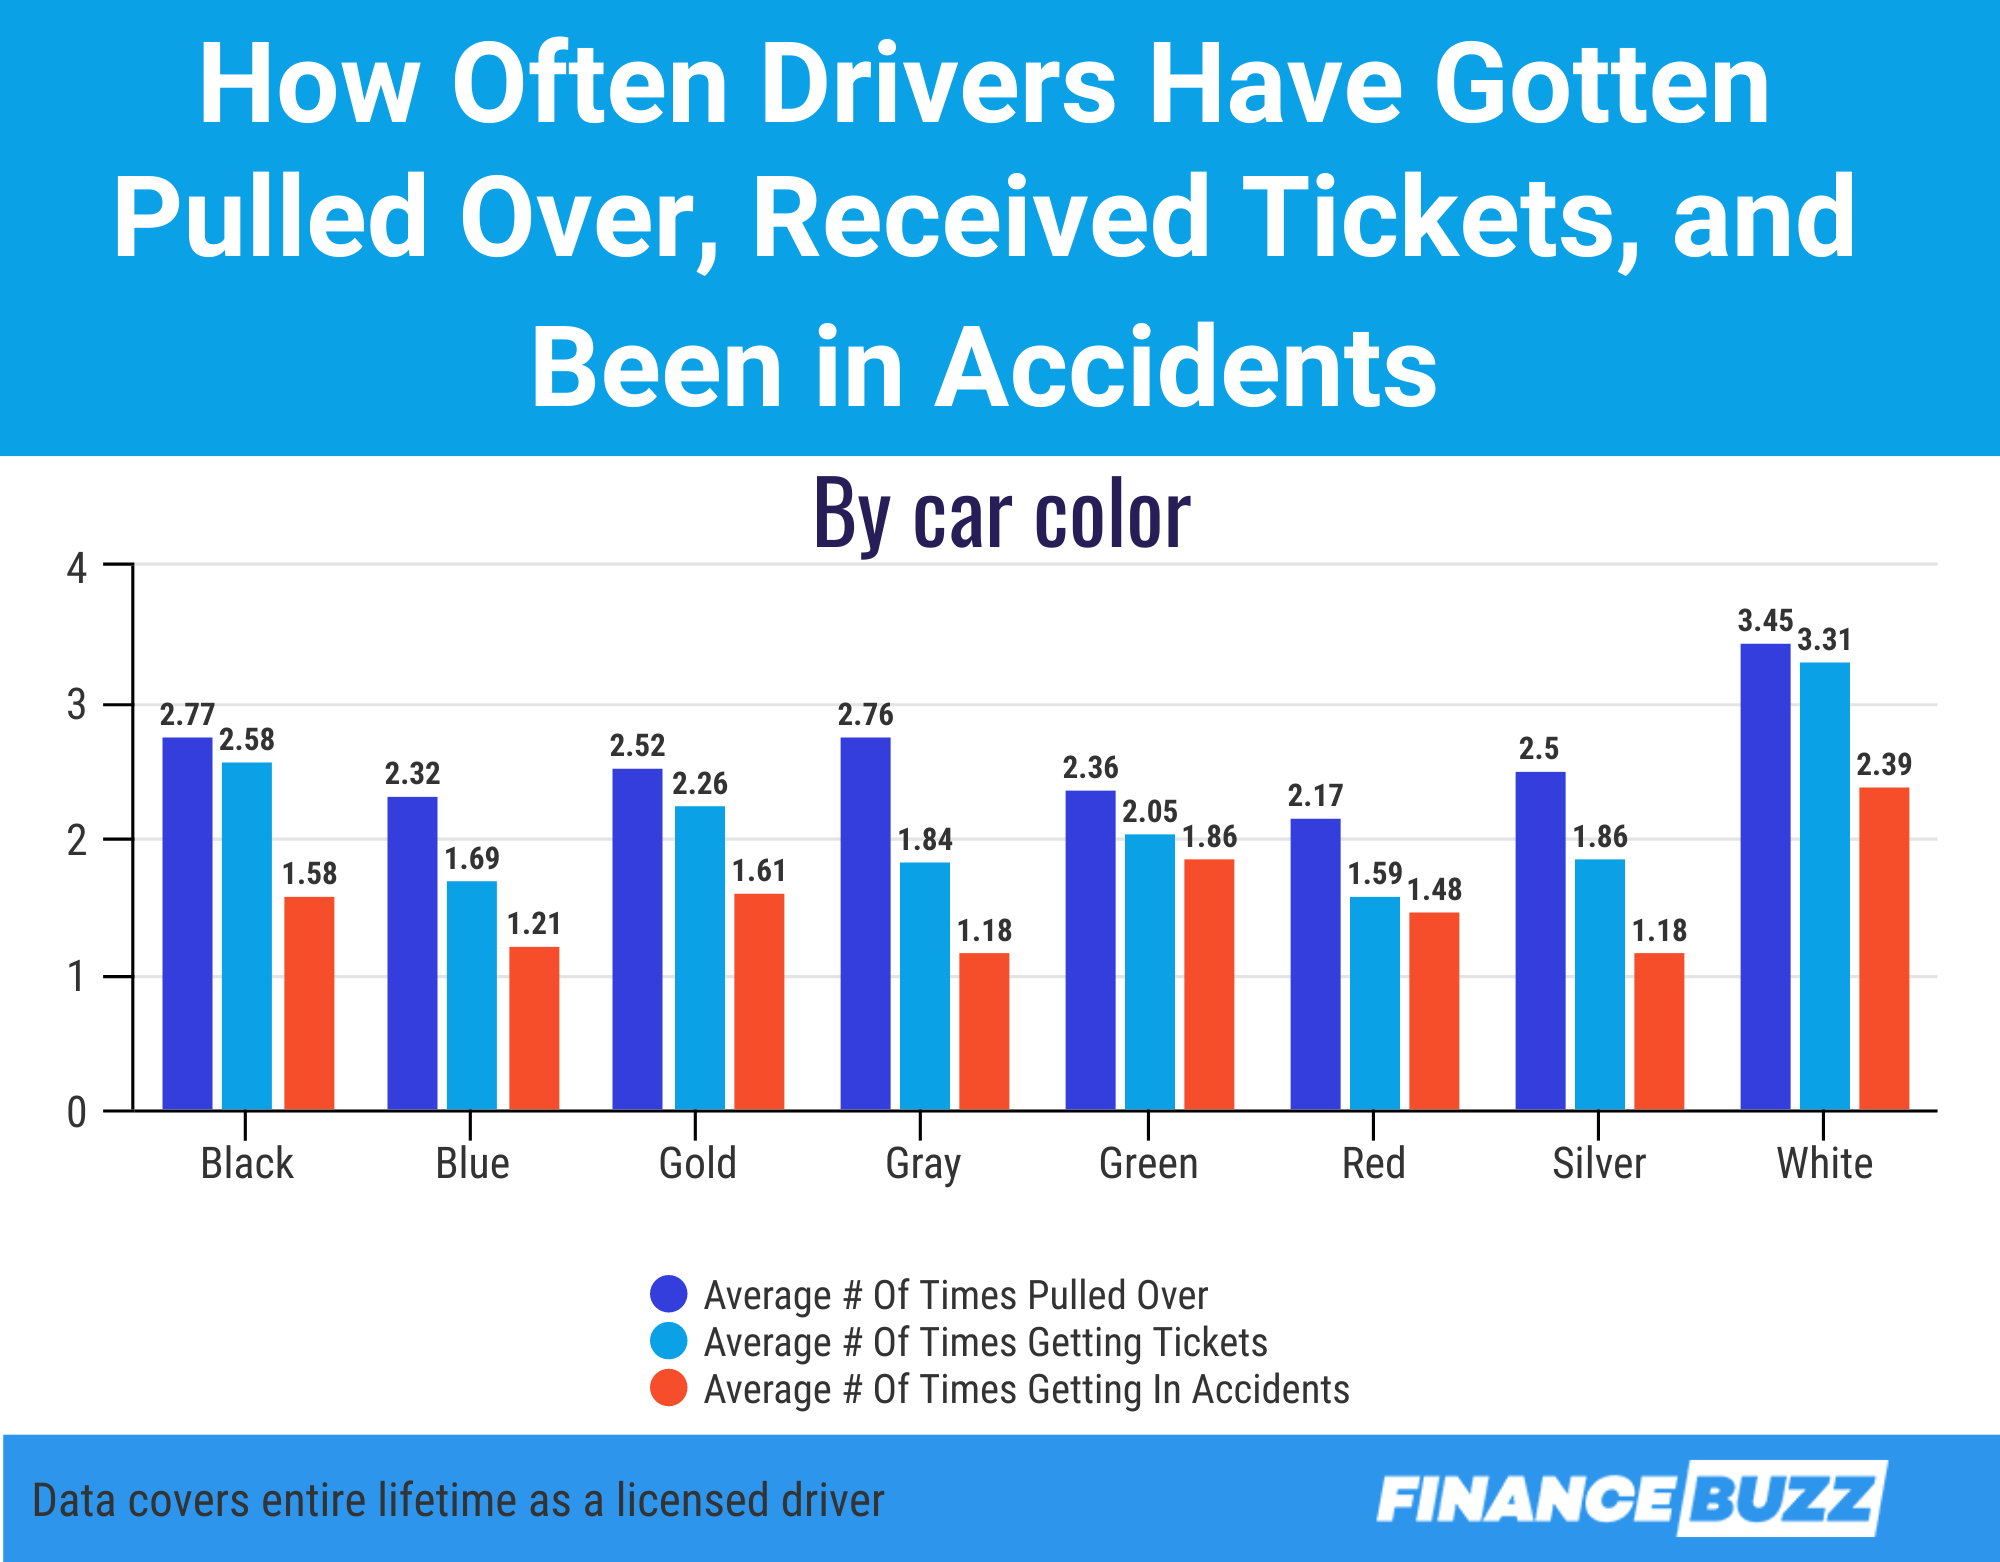 Graphic showing how often drivers of different car colors have gotten tickets and been in accidents